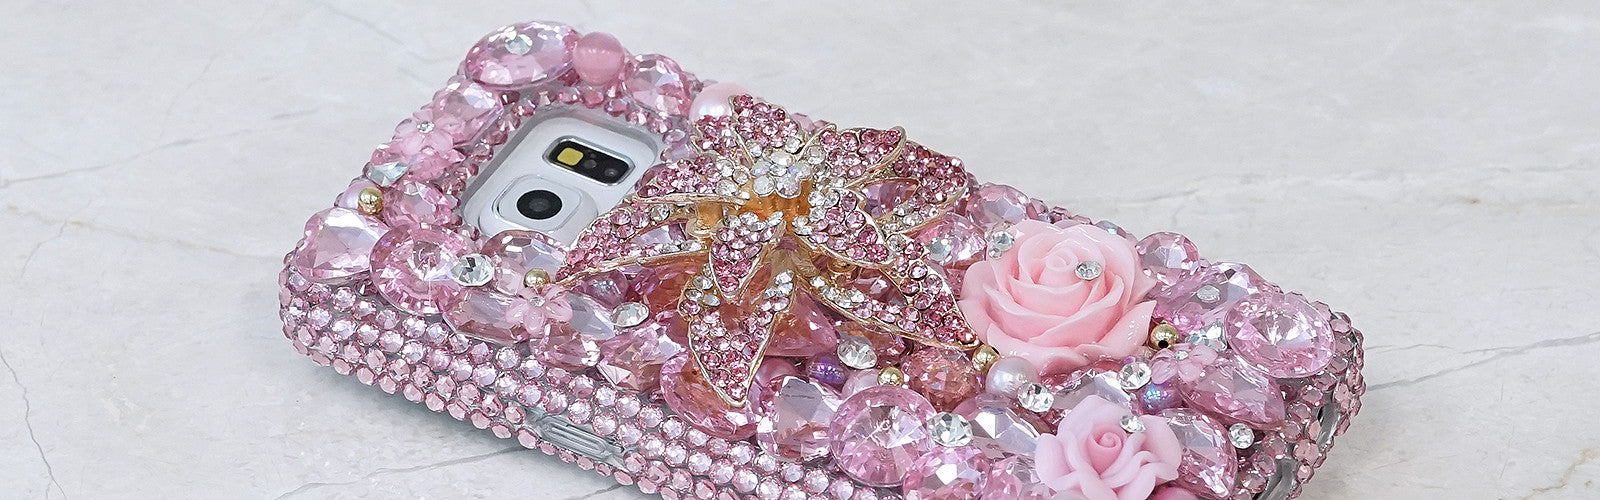 Pink flower bling Samsung Galaxy S7 case